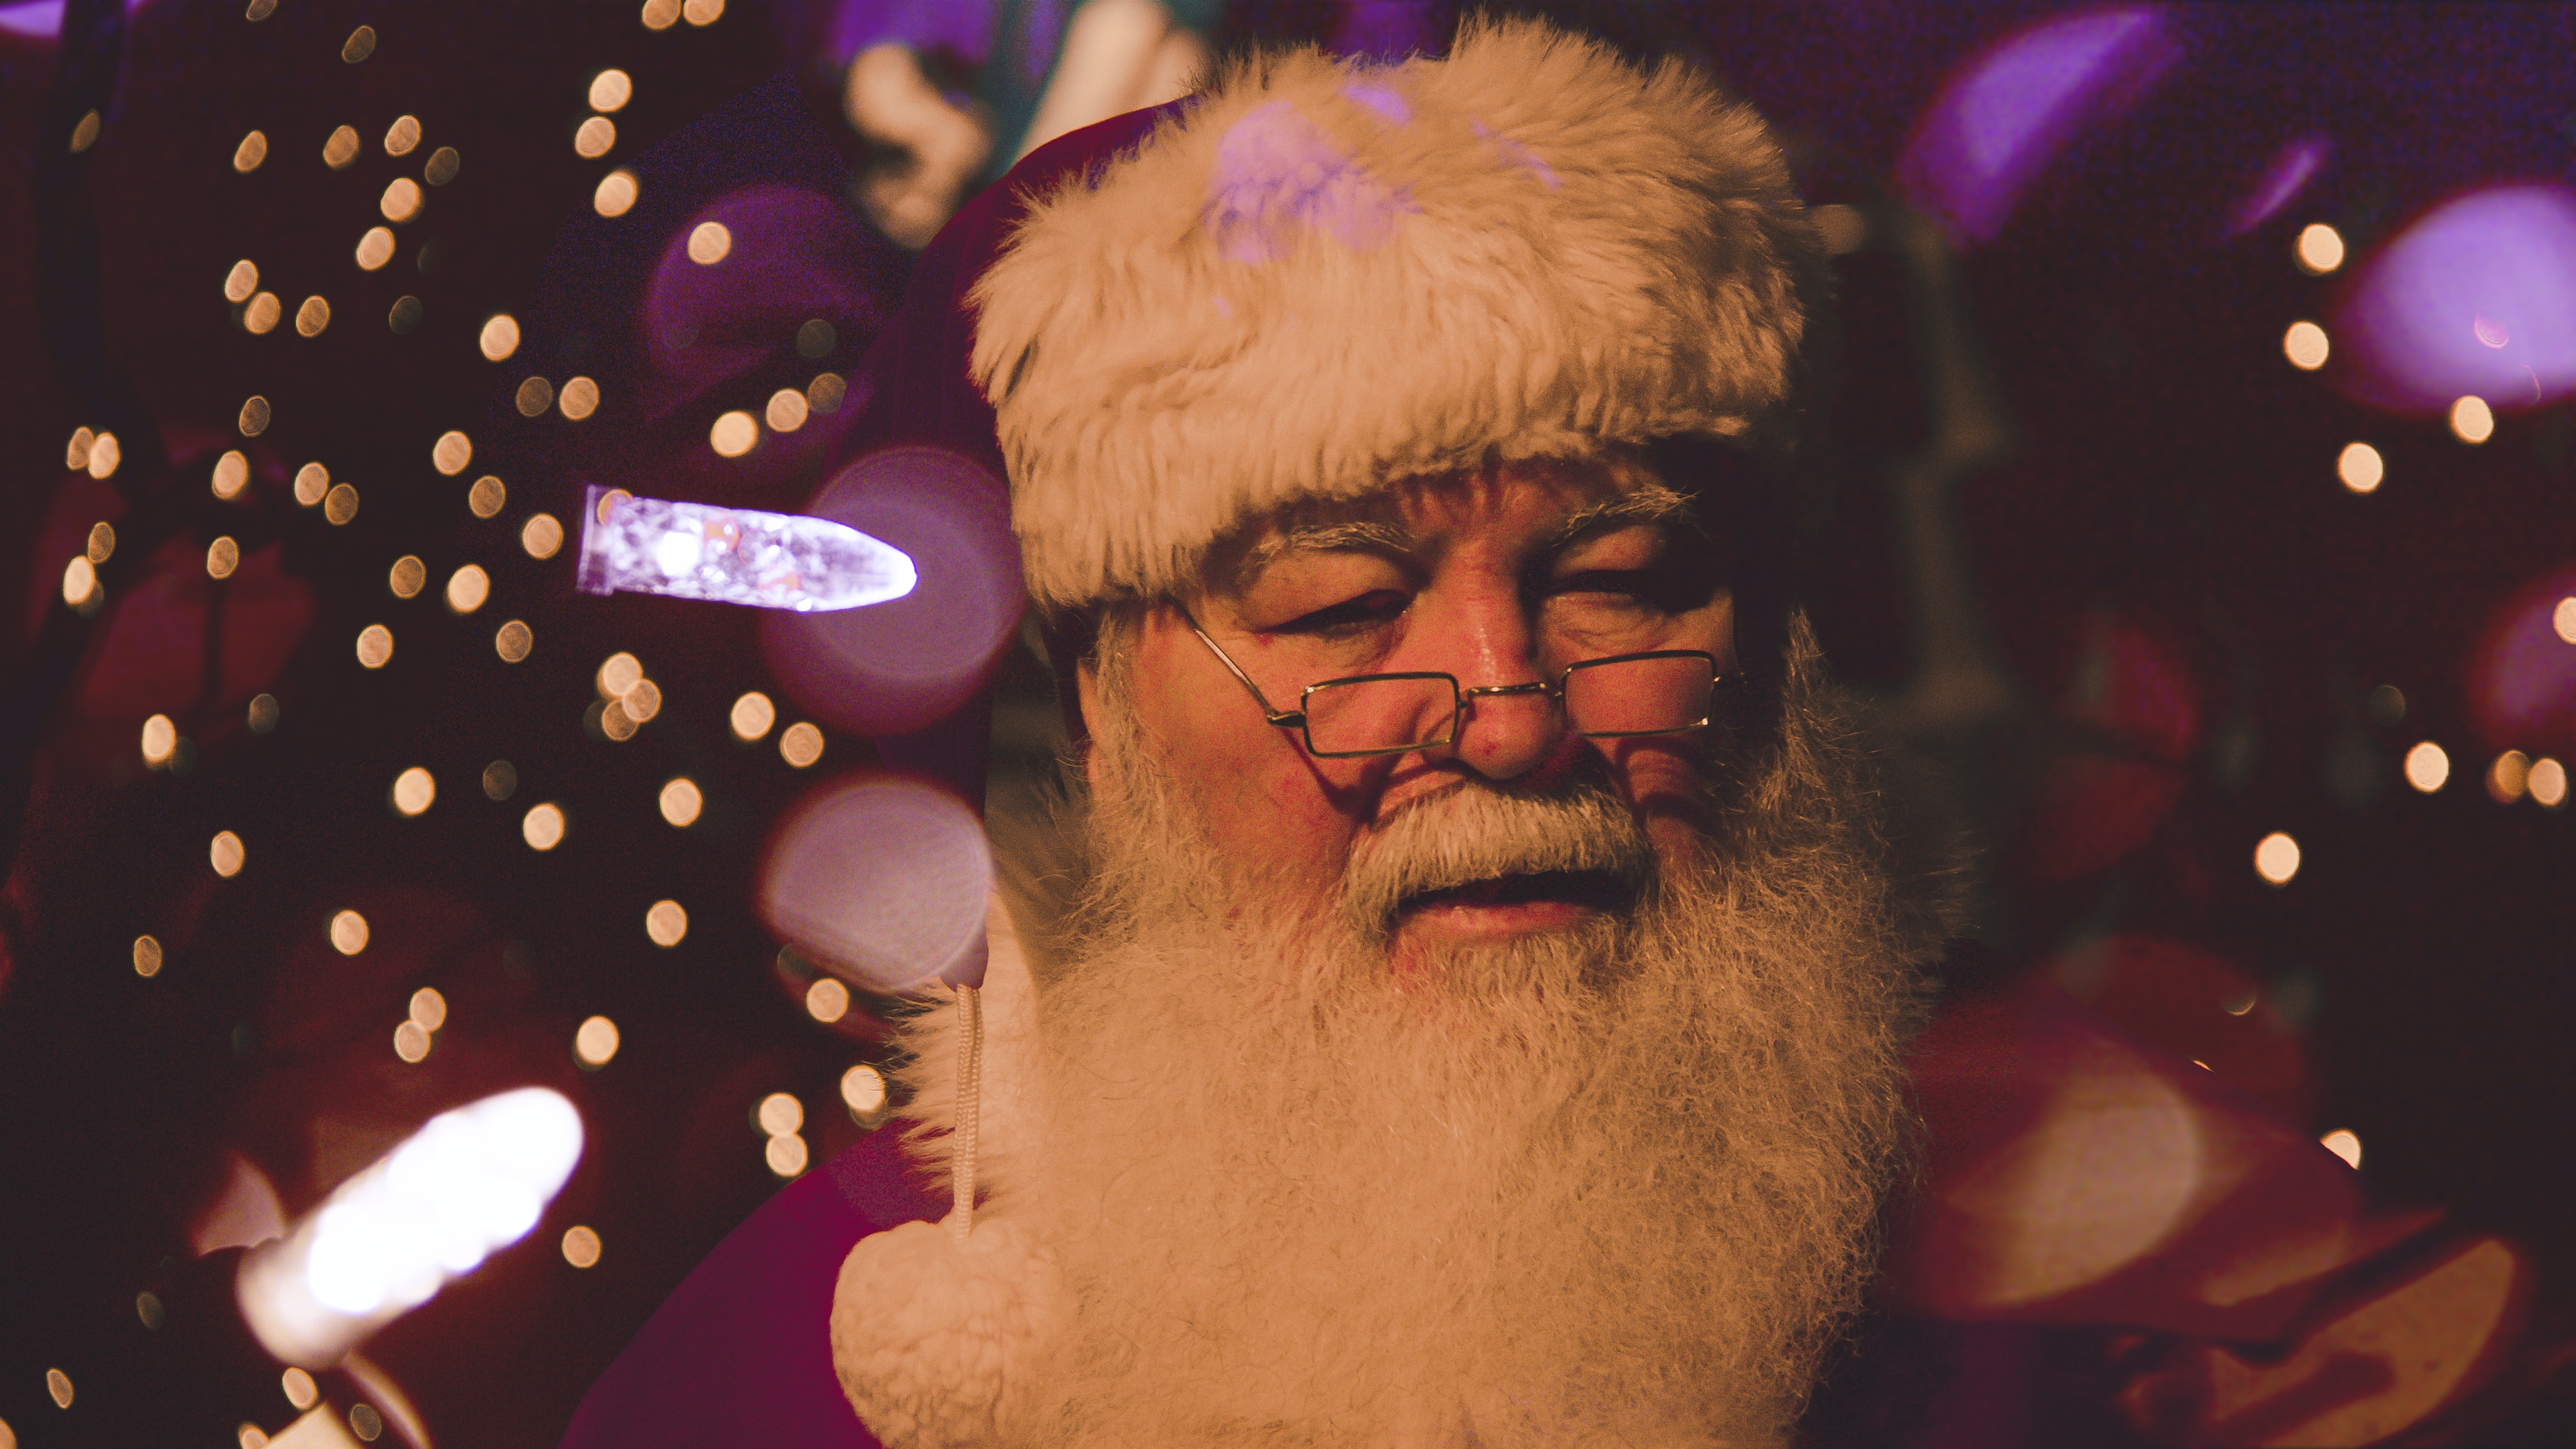 bokeh photography of Santa Claus